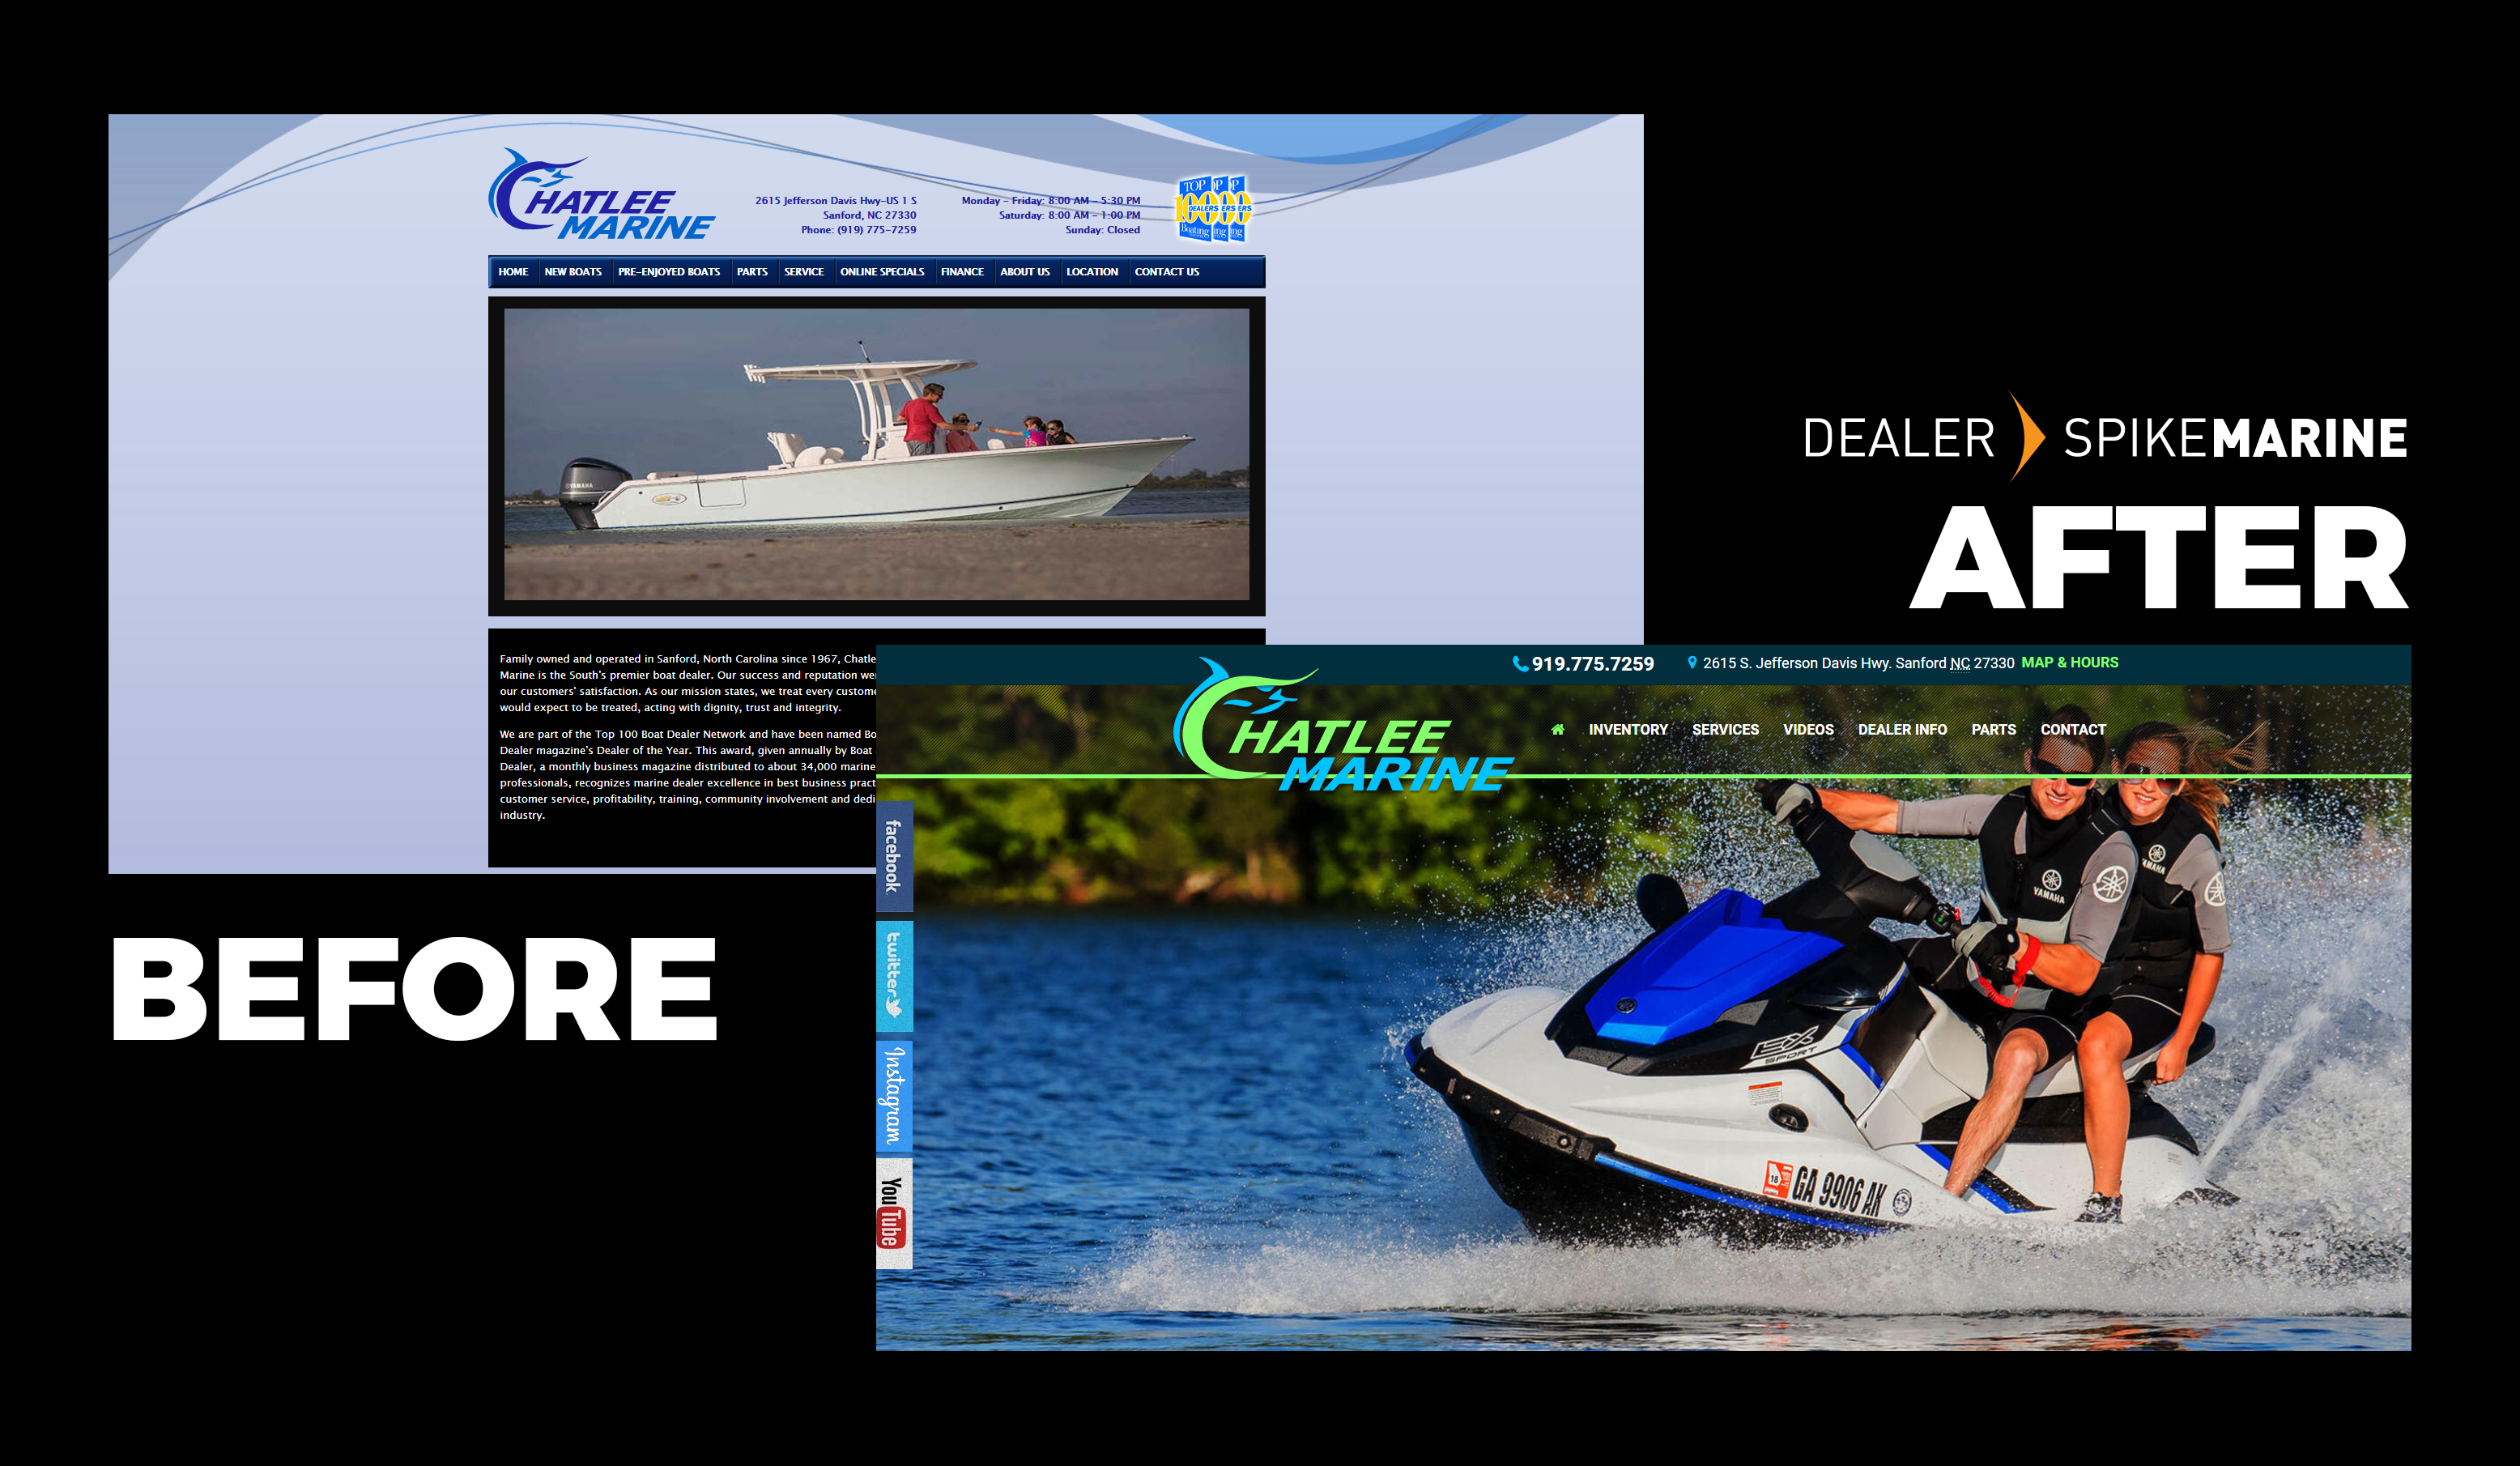 chatlee boat marine dealership website